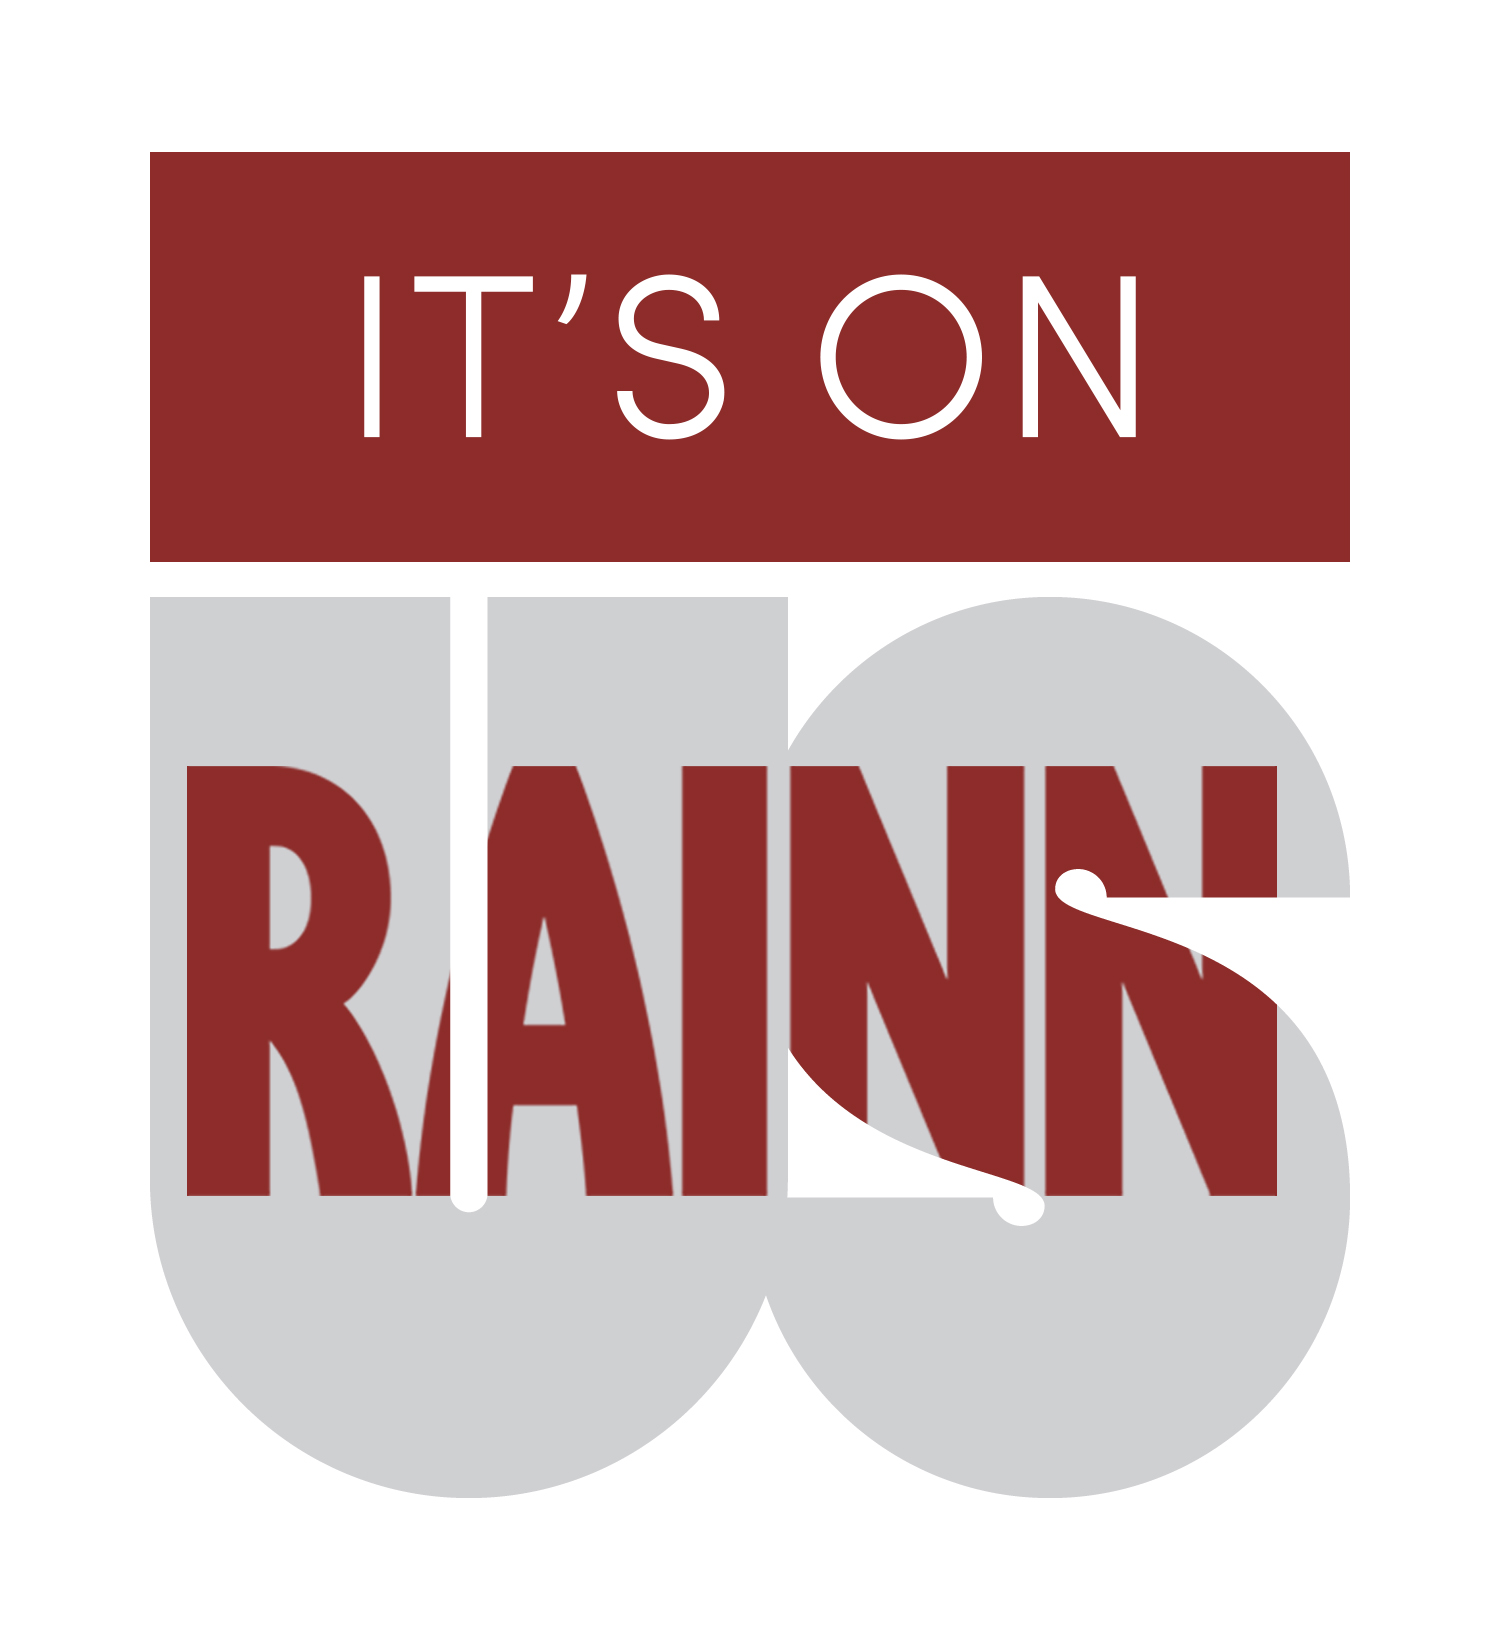 It's on us RAINN logo